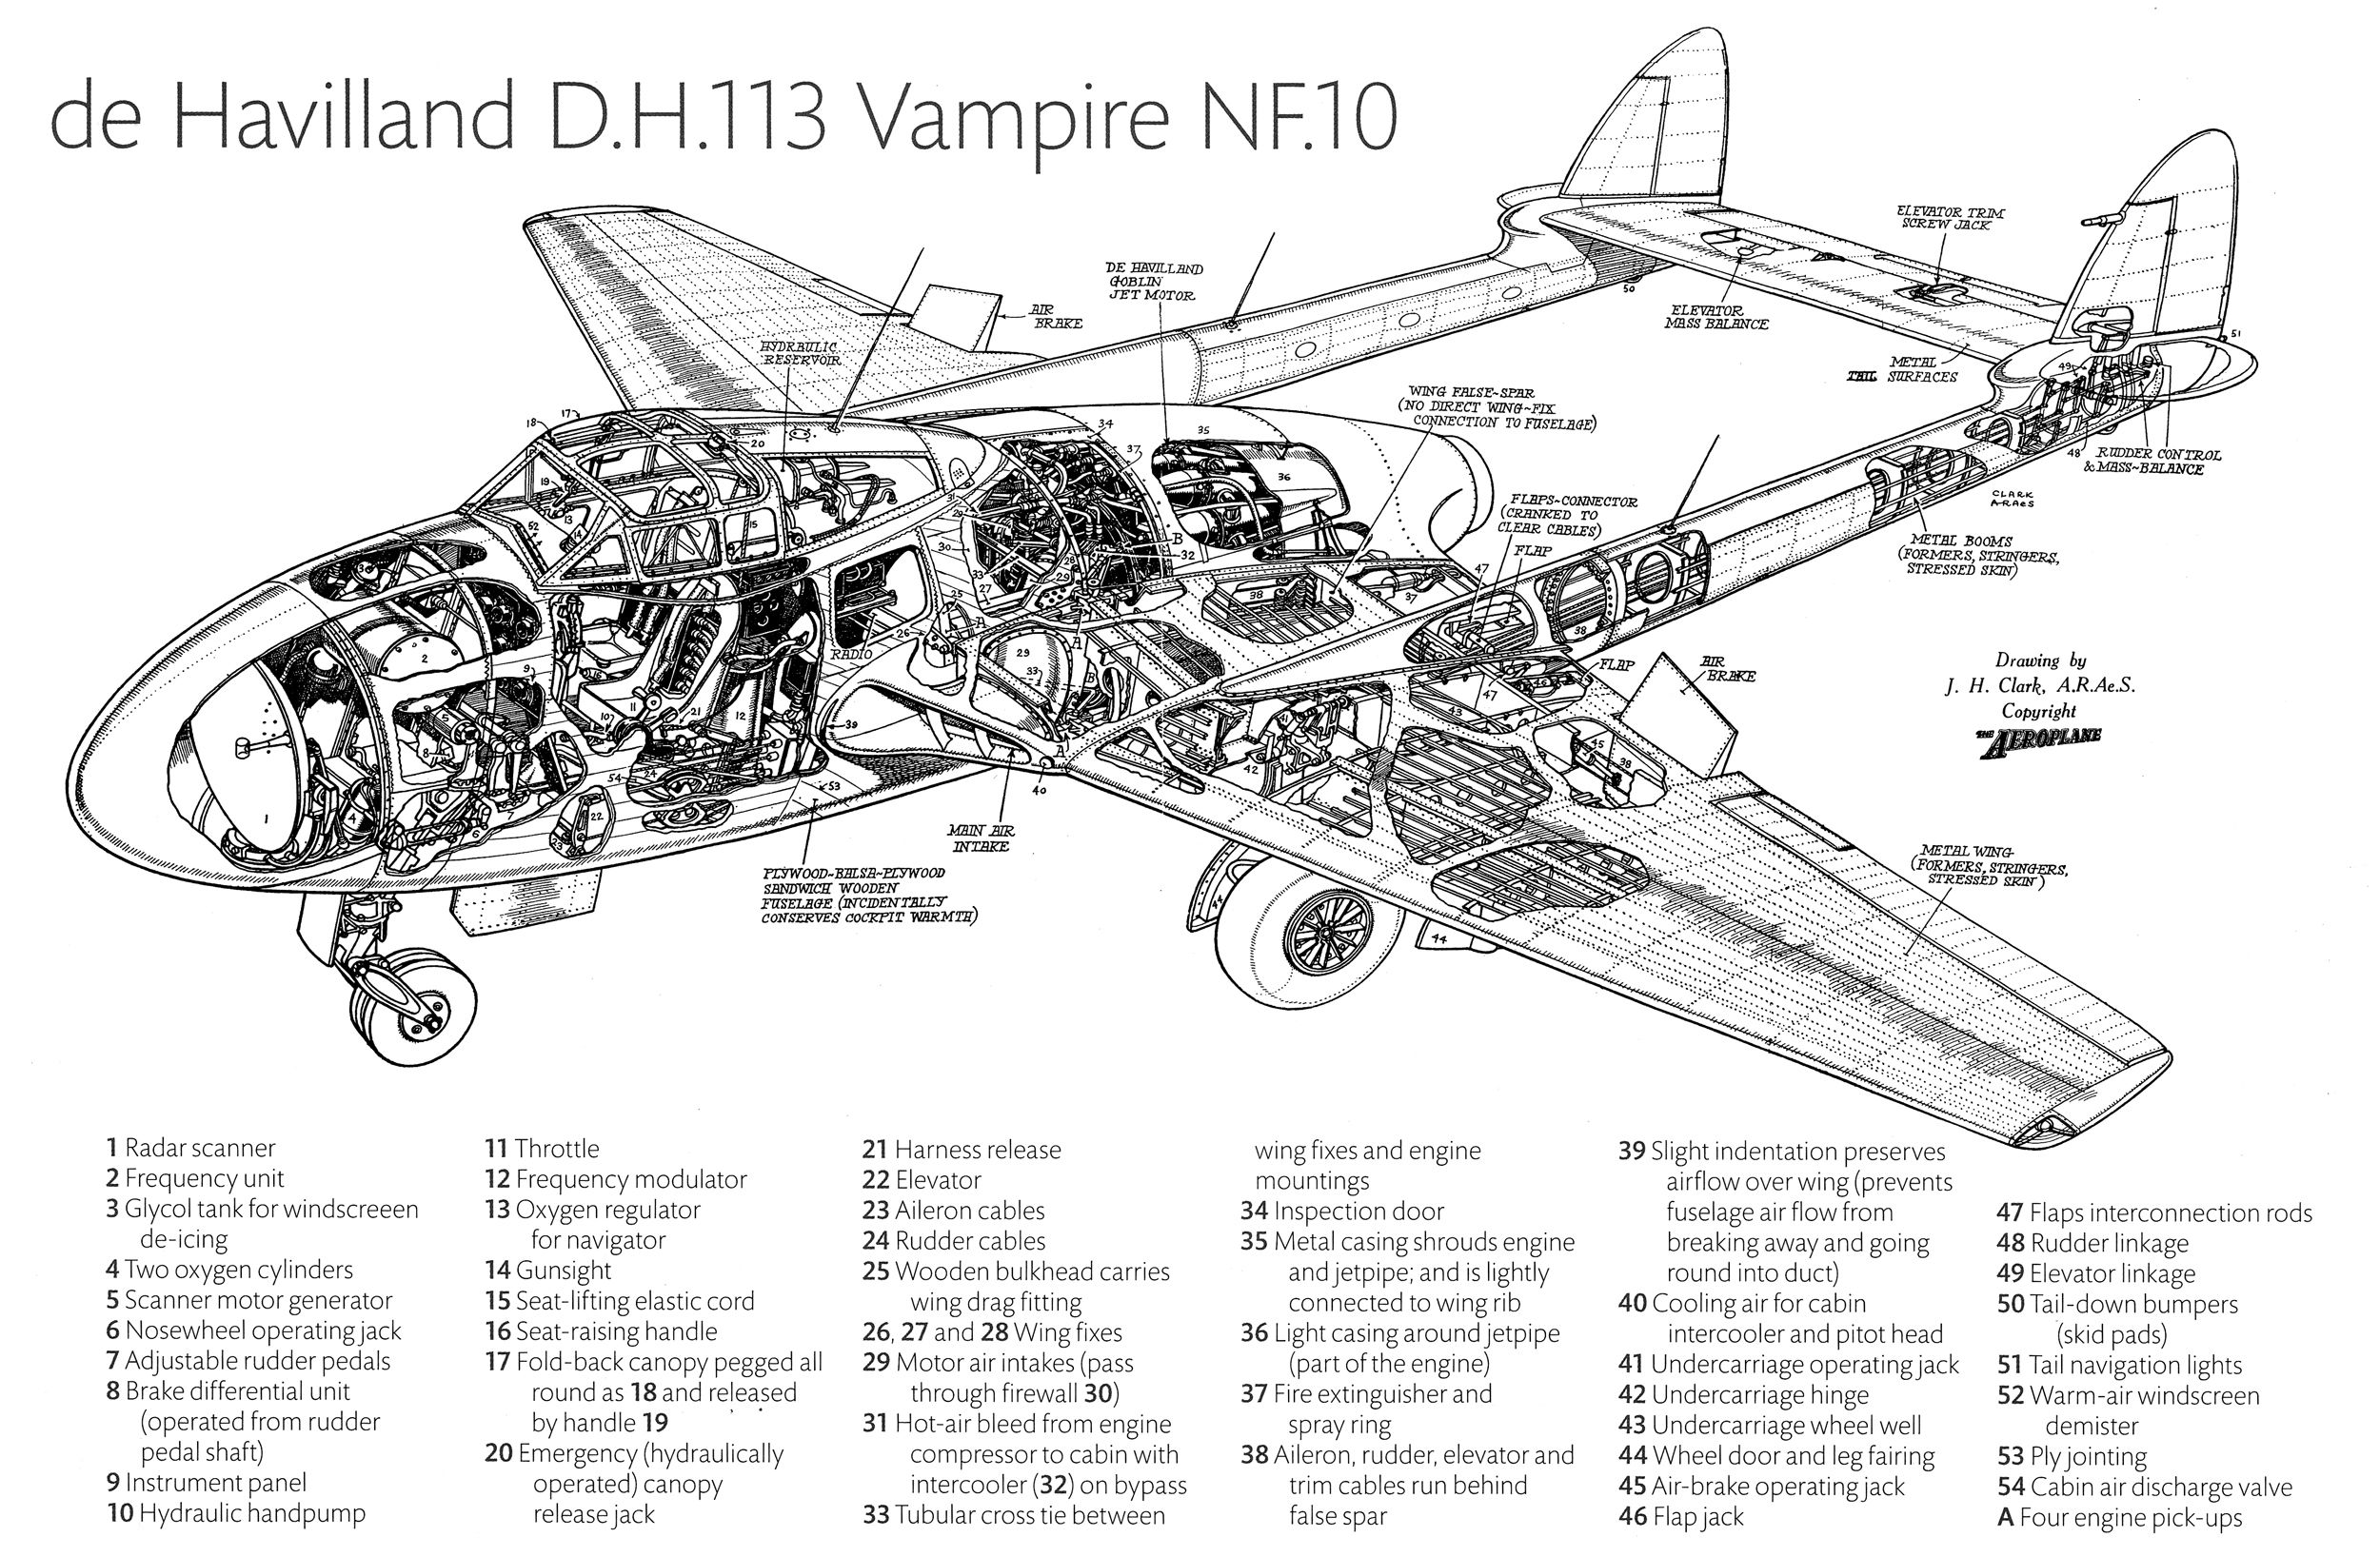 B29 Cutaways 39th Bomb Group VH cutaways Cutaway